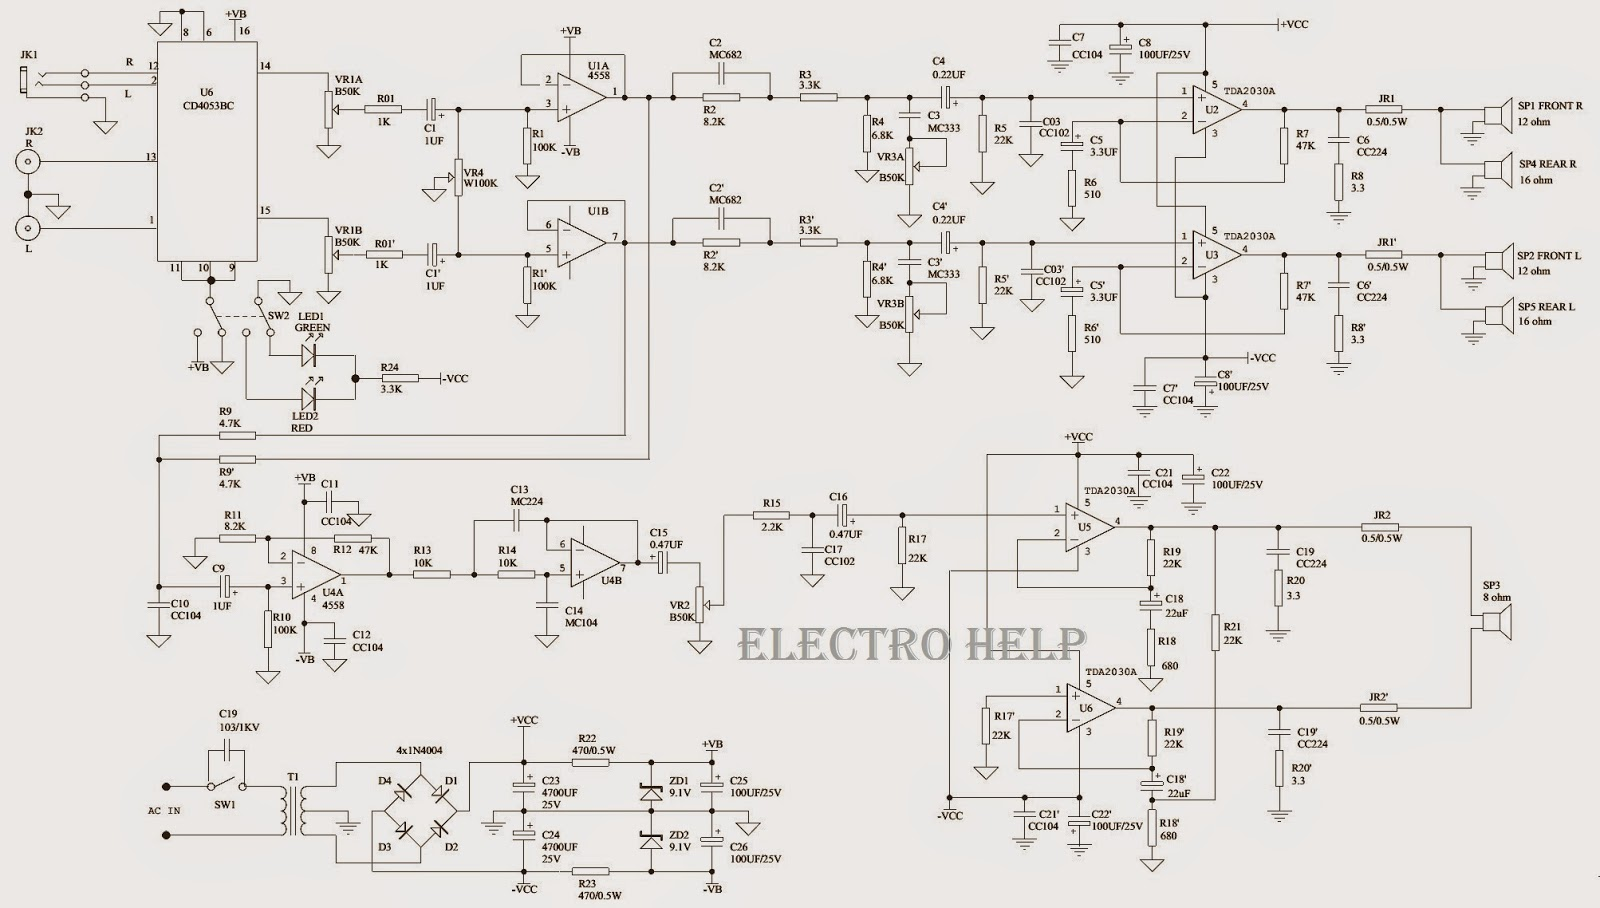 Altec Lansing 251 Wiring Diagram